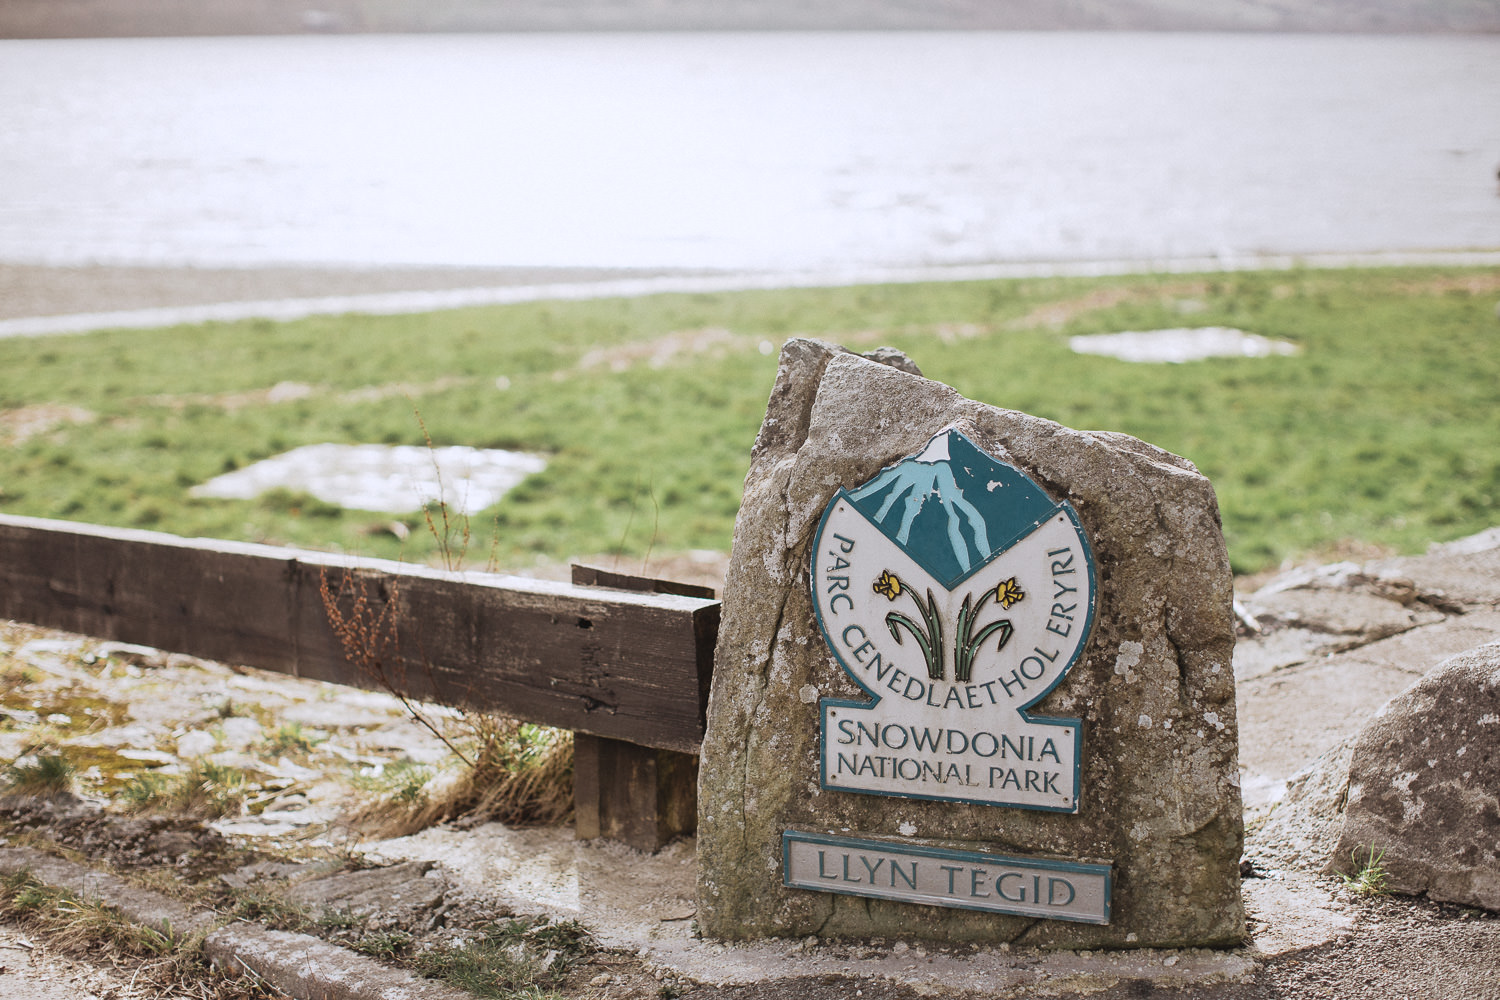 The sign at llyn tegid